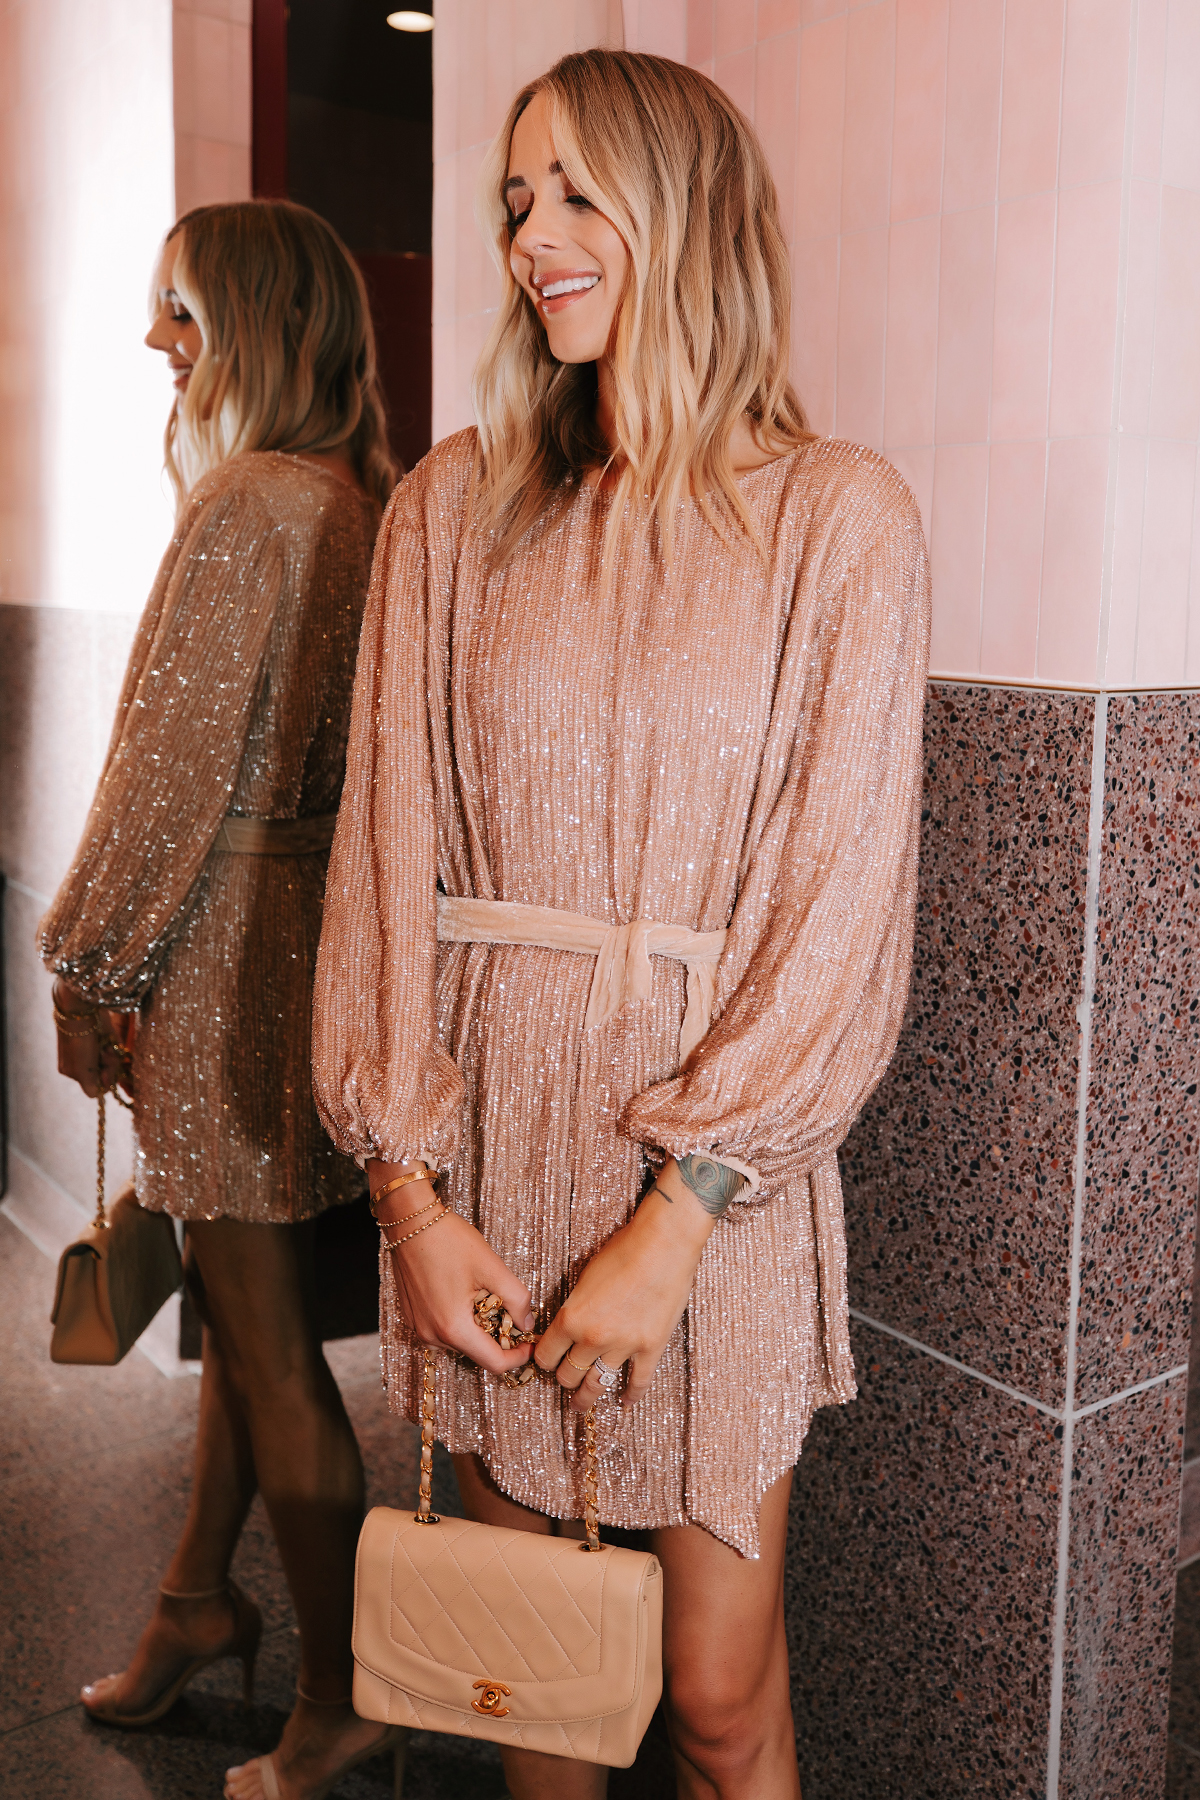 Fashion Jackson Wearing Retrofete Blush sequin holiday party dress Chanel Beige Handbag 5